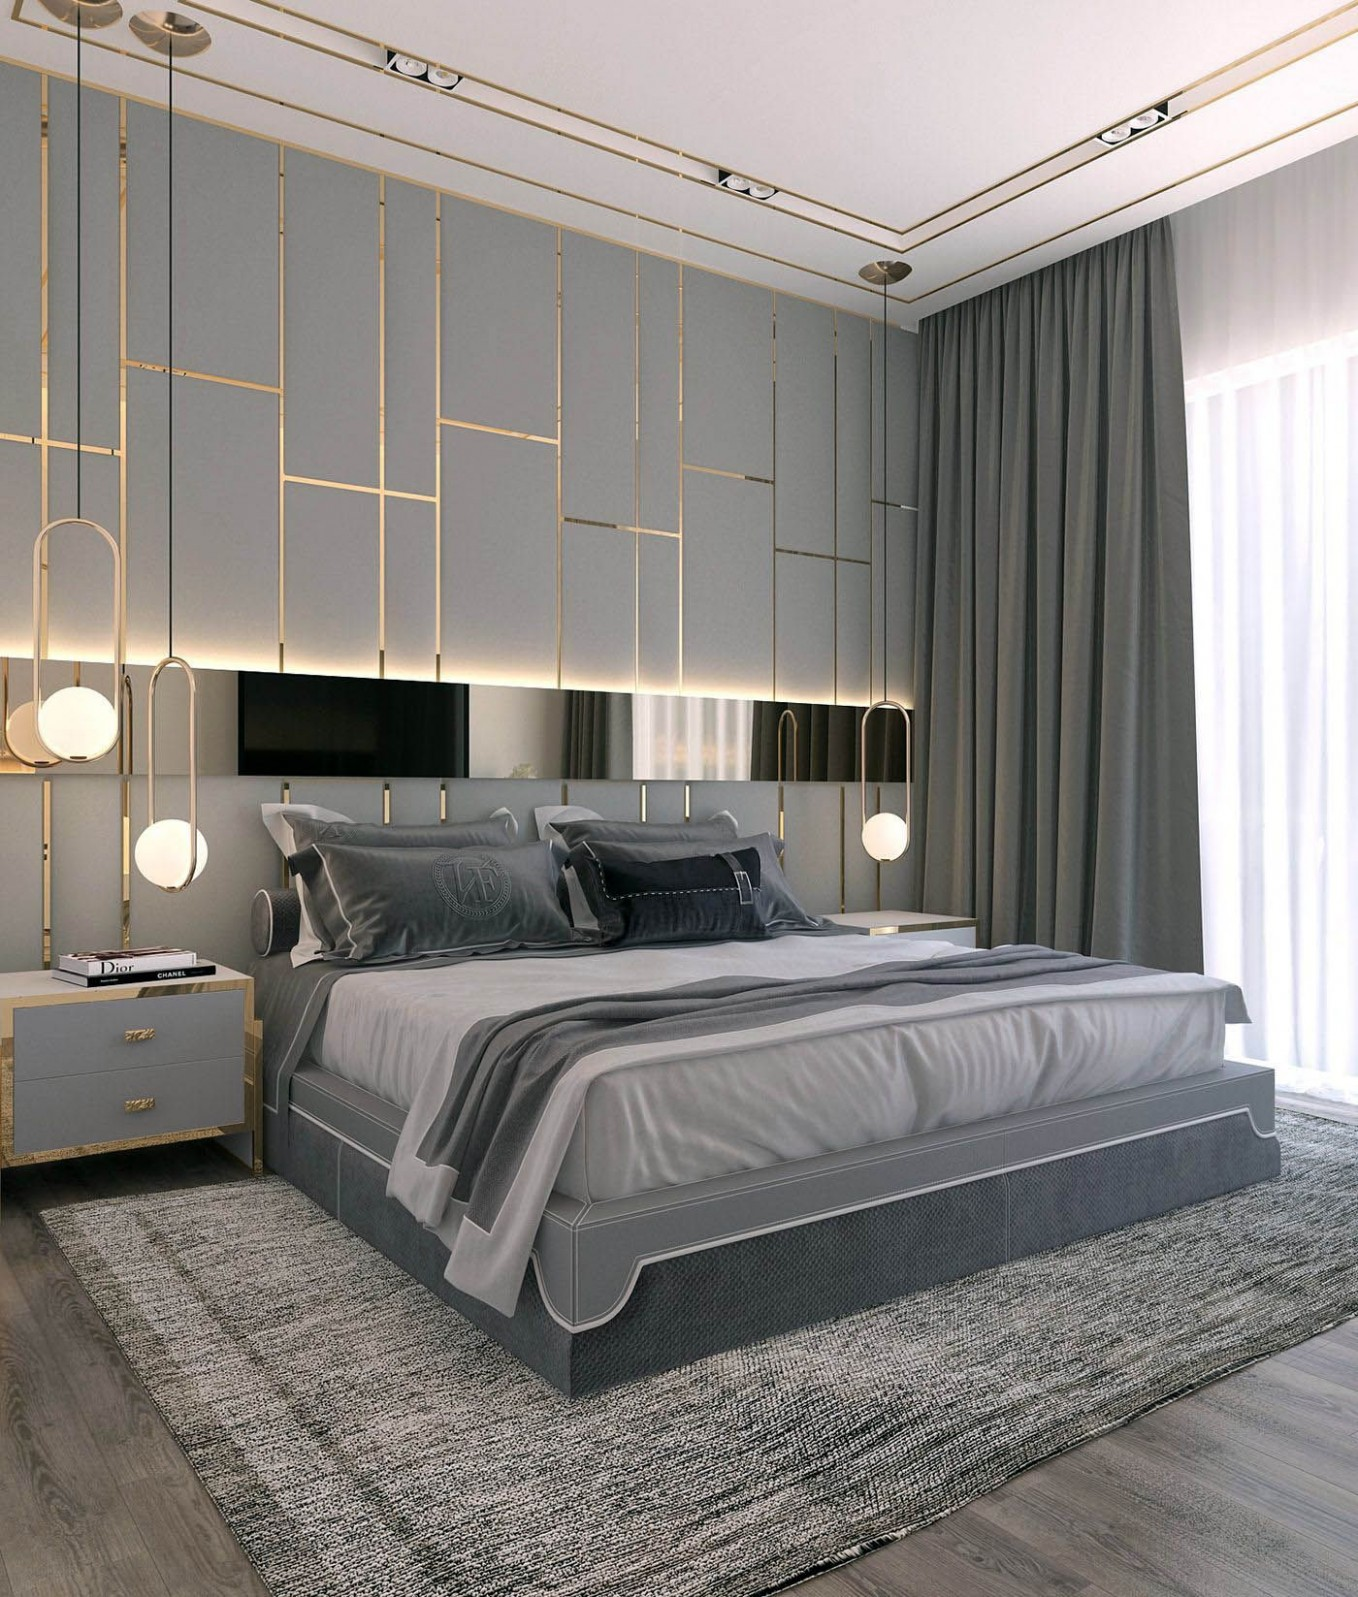 Good master bedroom ideas and colors made easy  Simple bedroom  - Bedroom Ideas Design